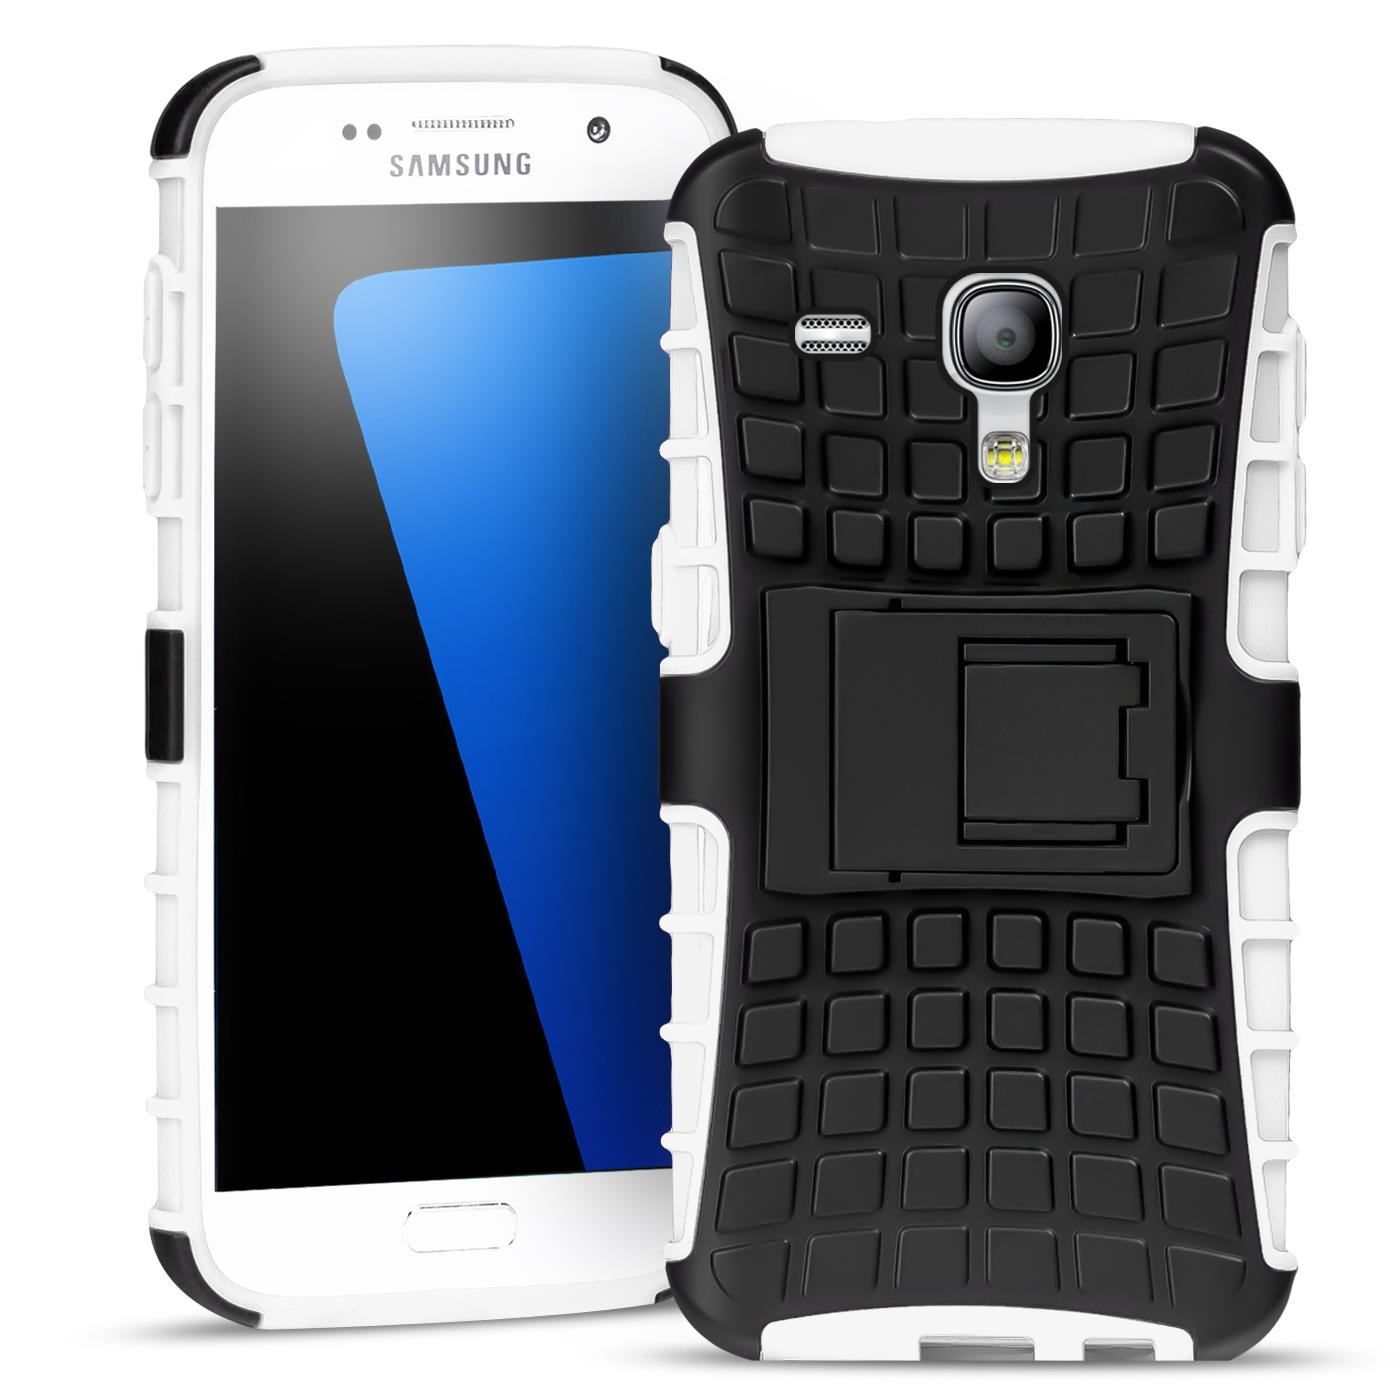 competitive price 766ba 3991a Details about Samsung Galaxy S3 Mini Case Hybrid Protective Mobile Phone  Cover Pouch